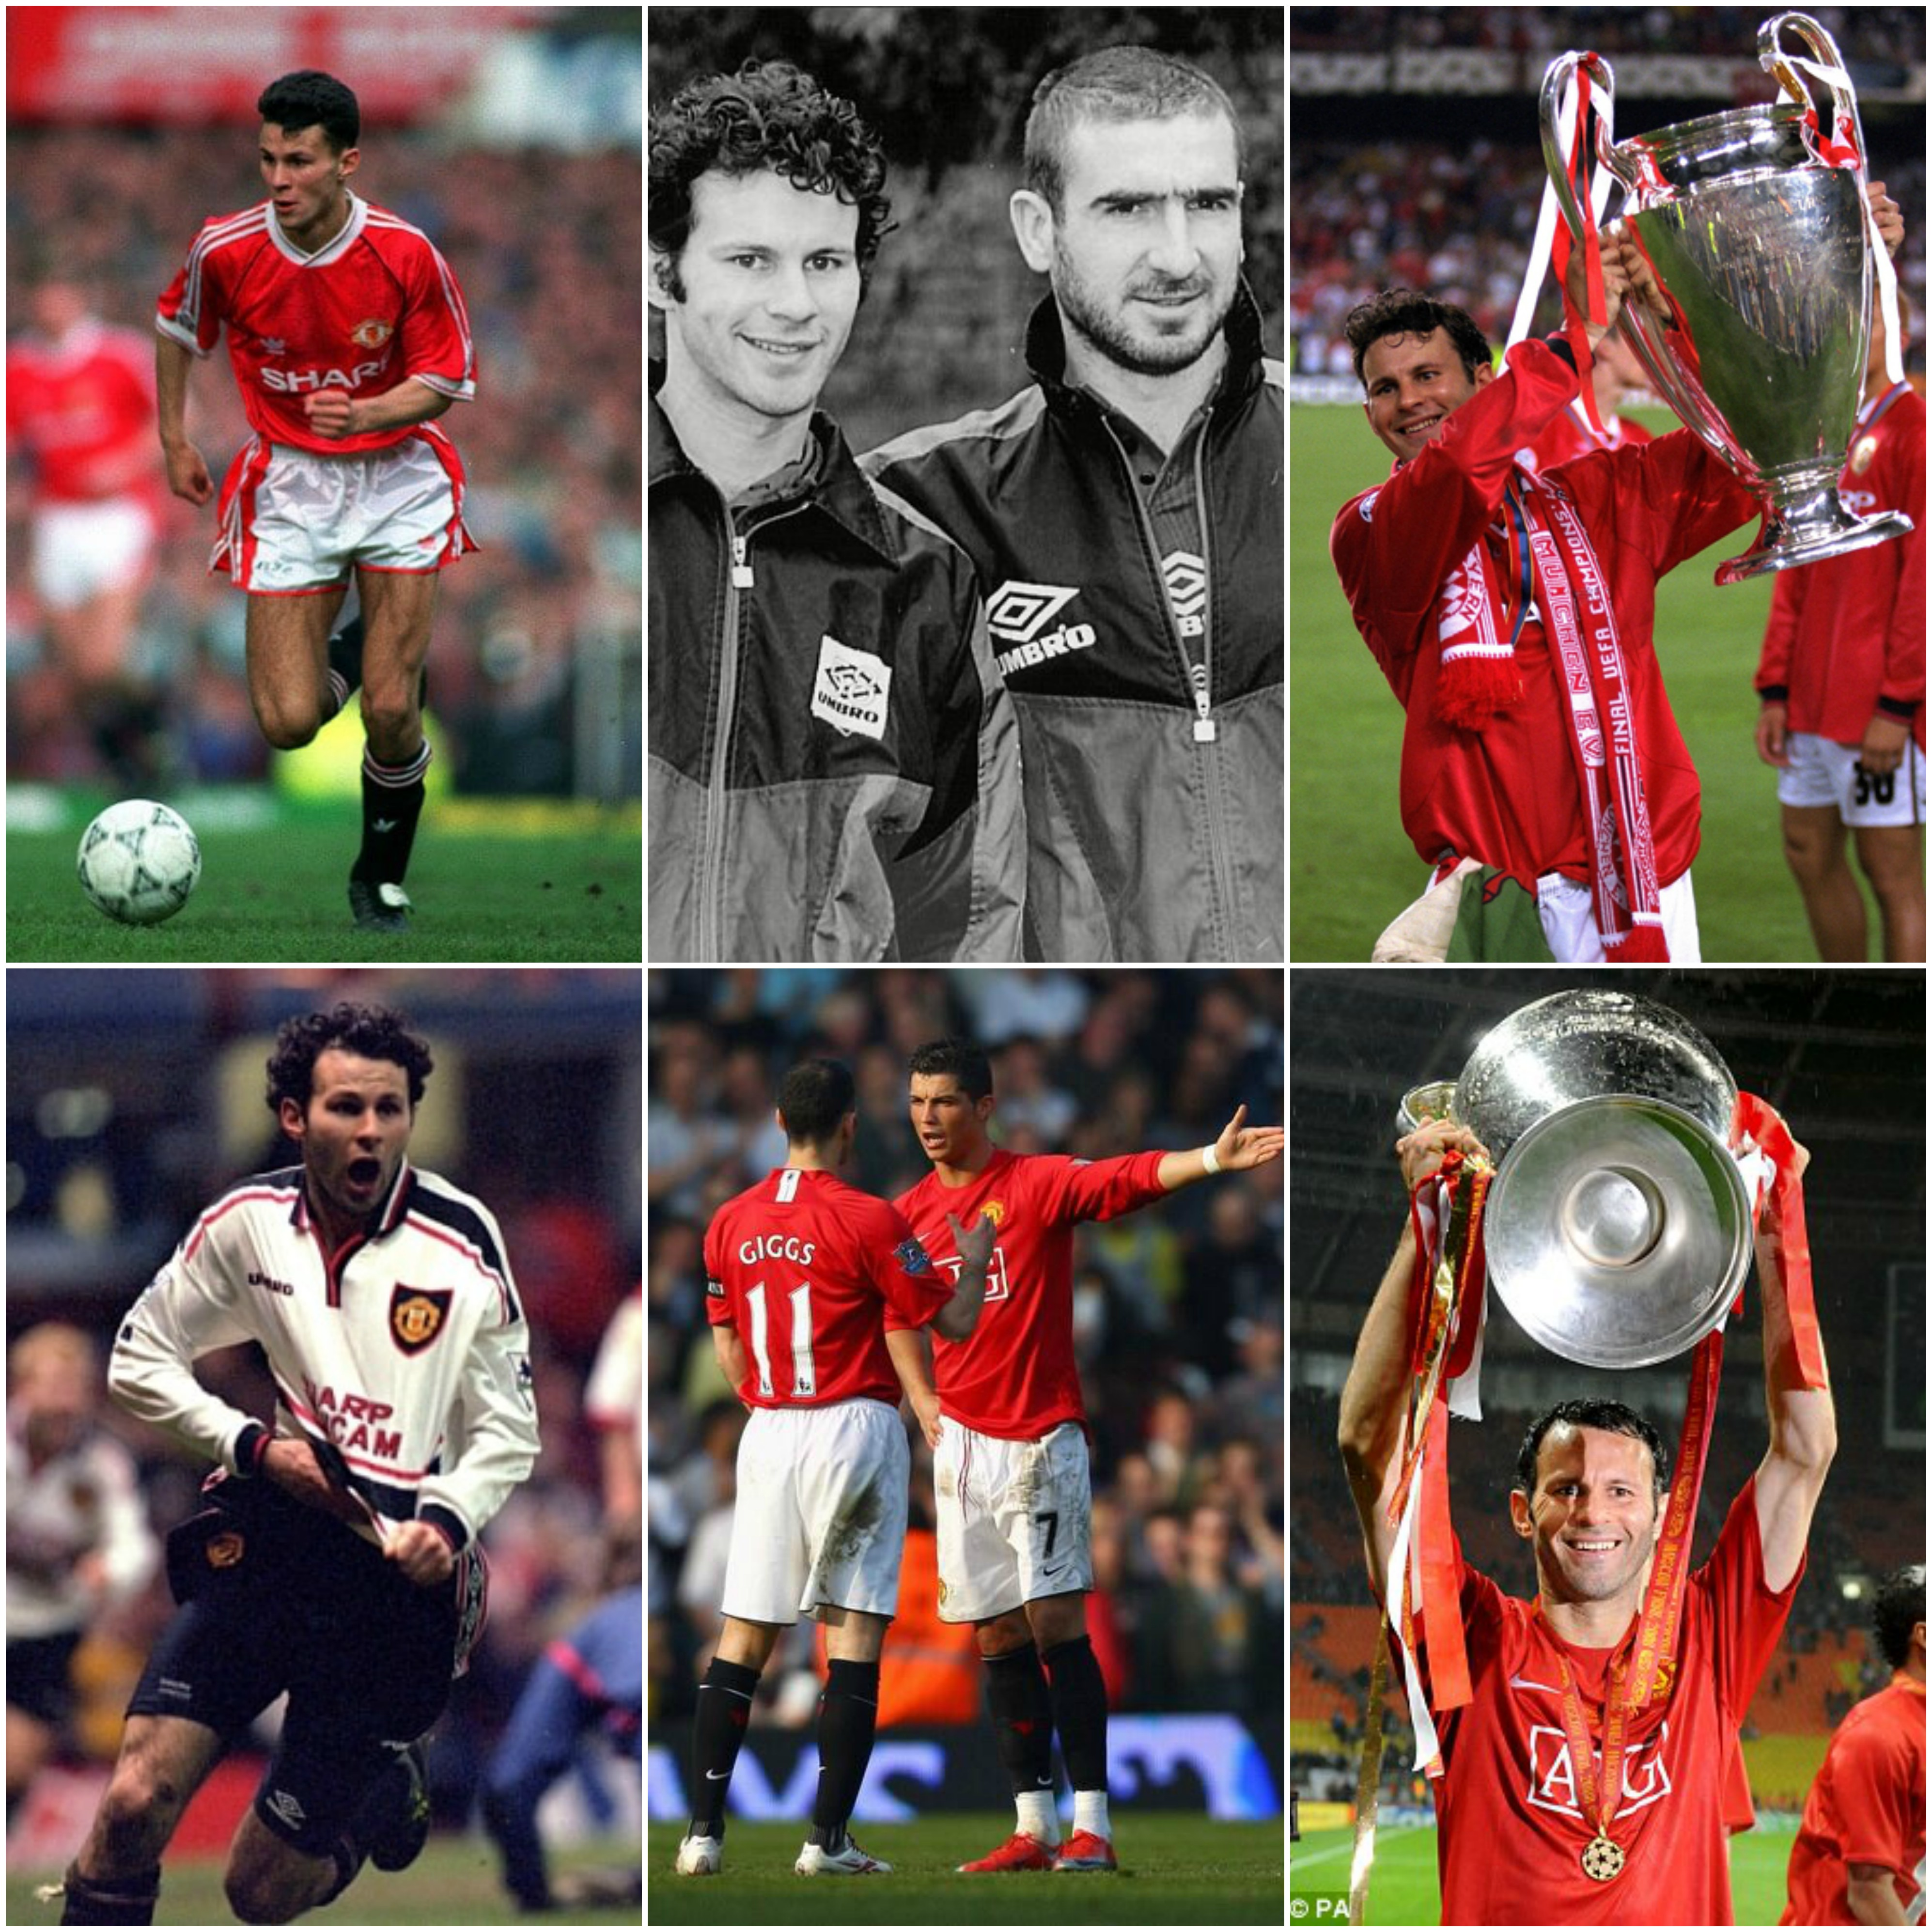 Ryan Giggs, a legend of Manchester United. More than Best, Cantona and Bobby Charlton